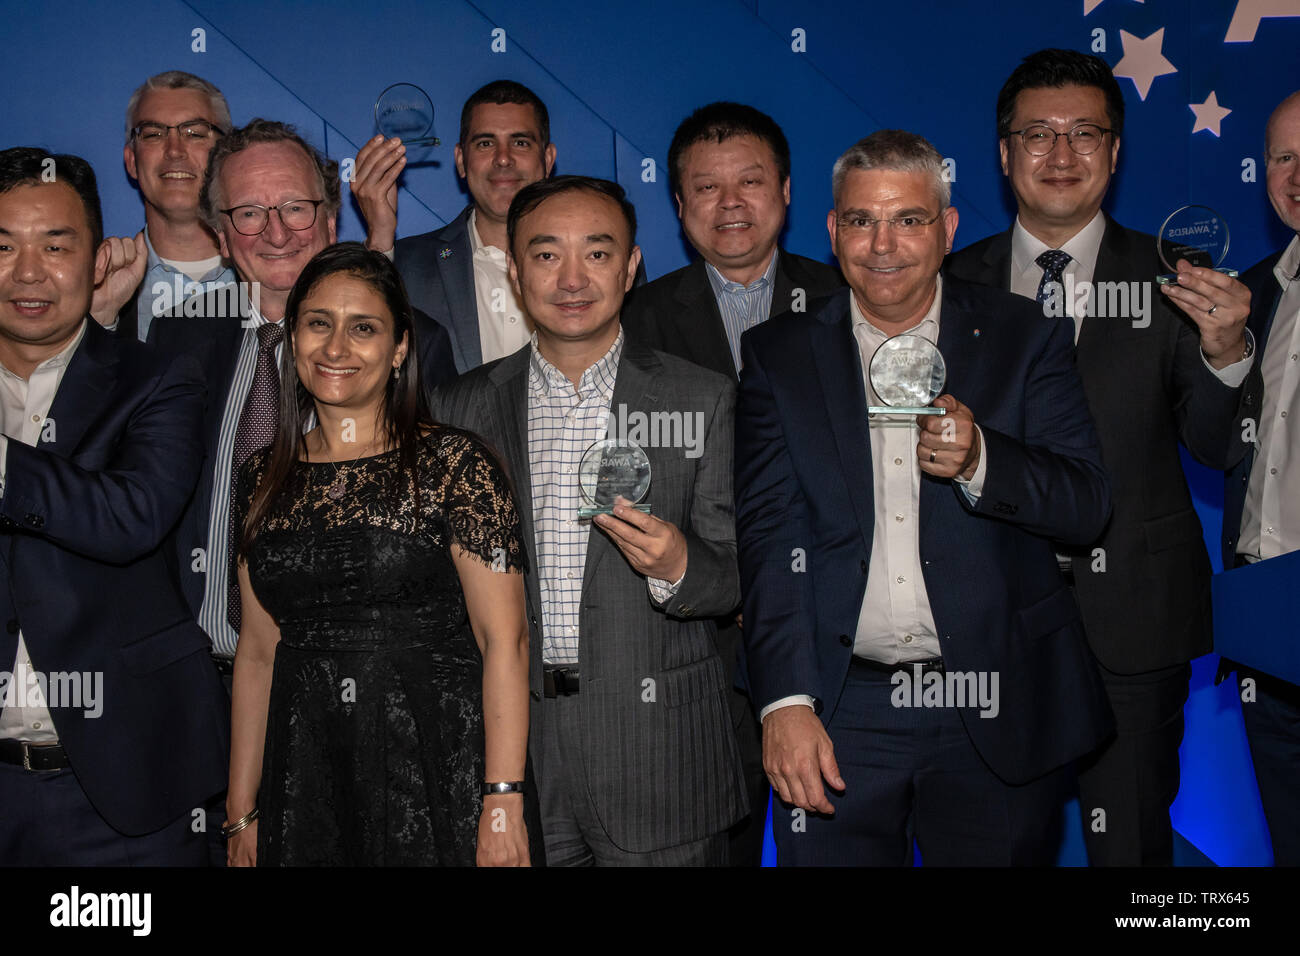 London, UK. 12th June, 2019. 5G Awards ceremony at Drapers' Hall, on 12 June 2019, London, UK. Credit: Picture Capital/Alamy Live News Stock Photo